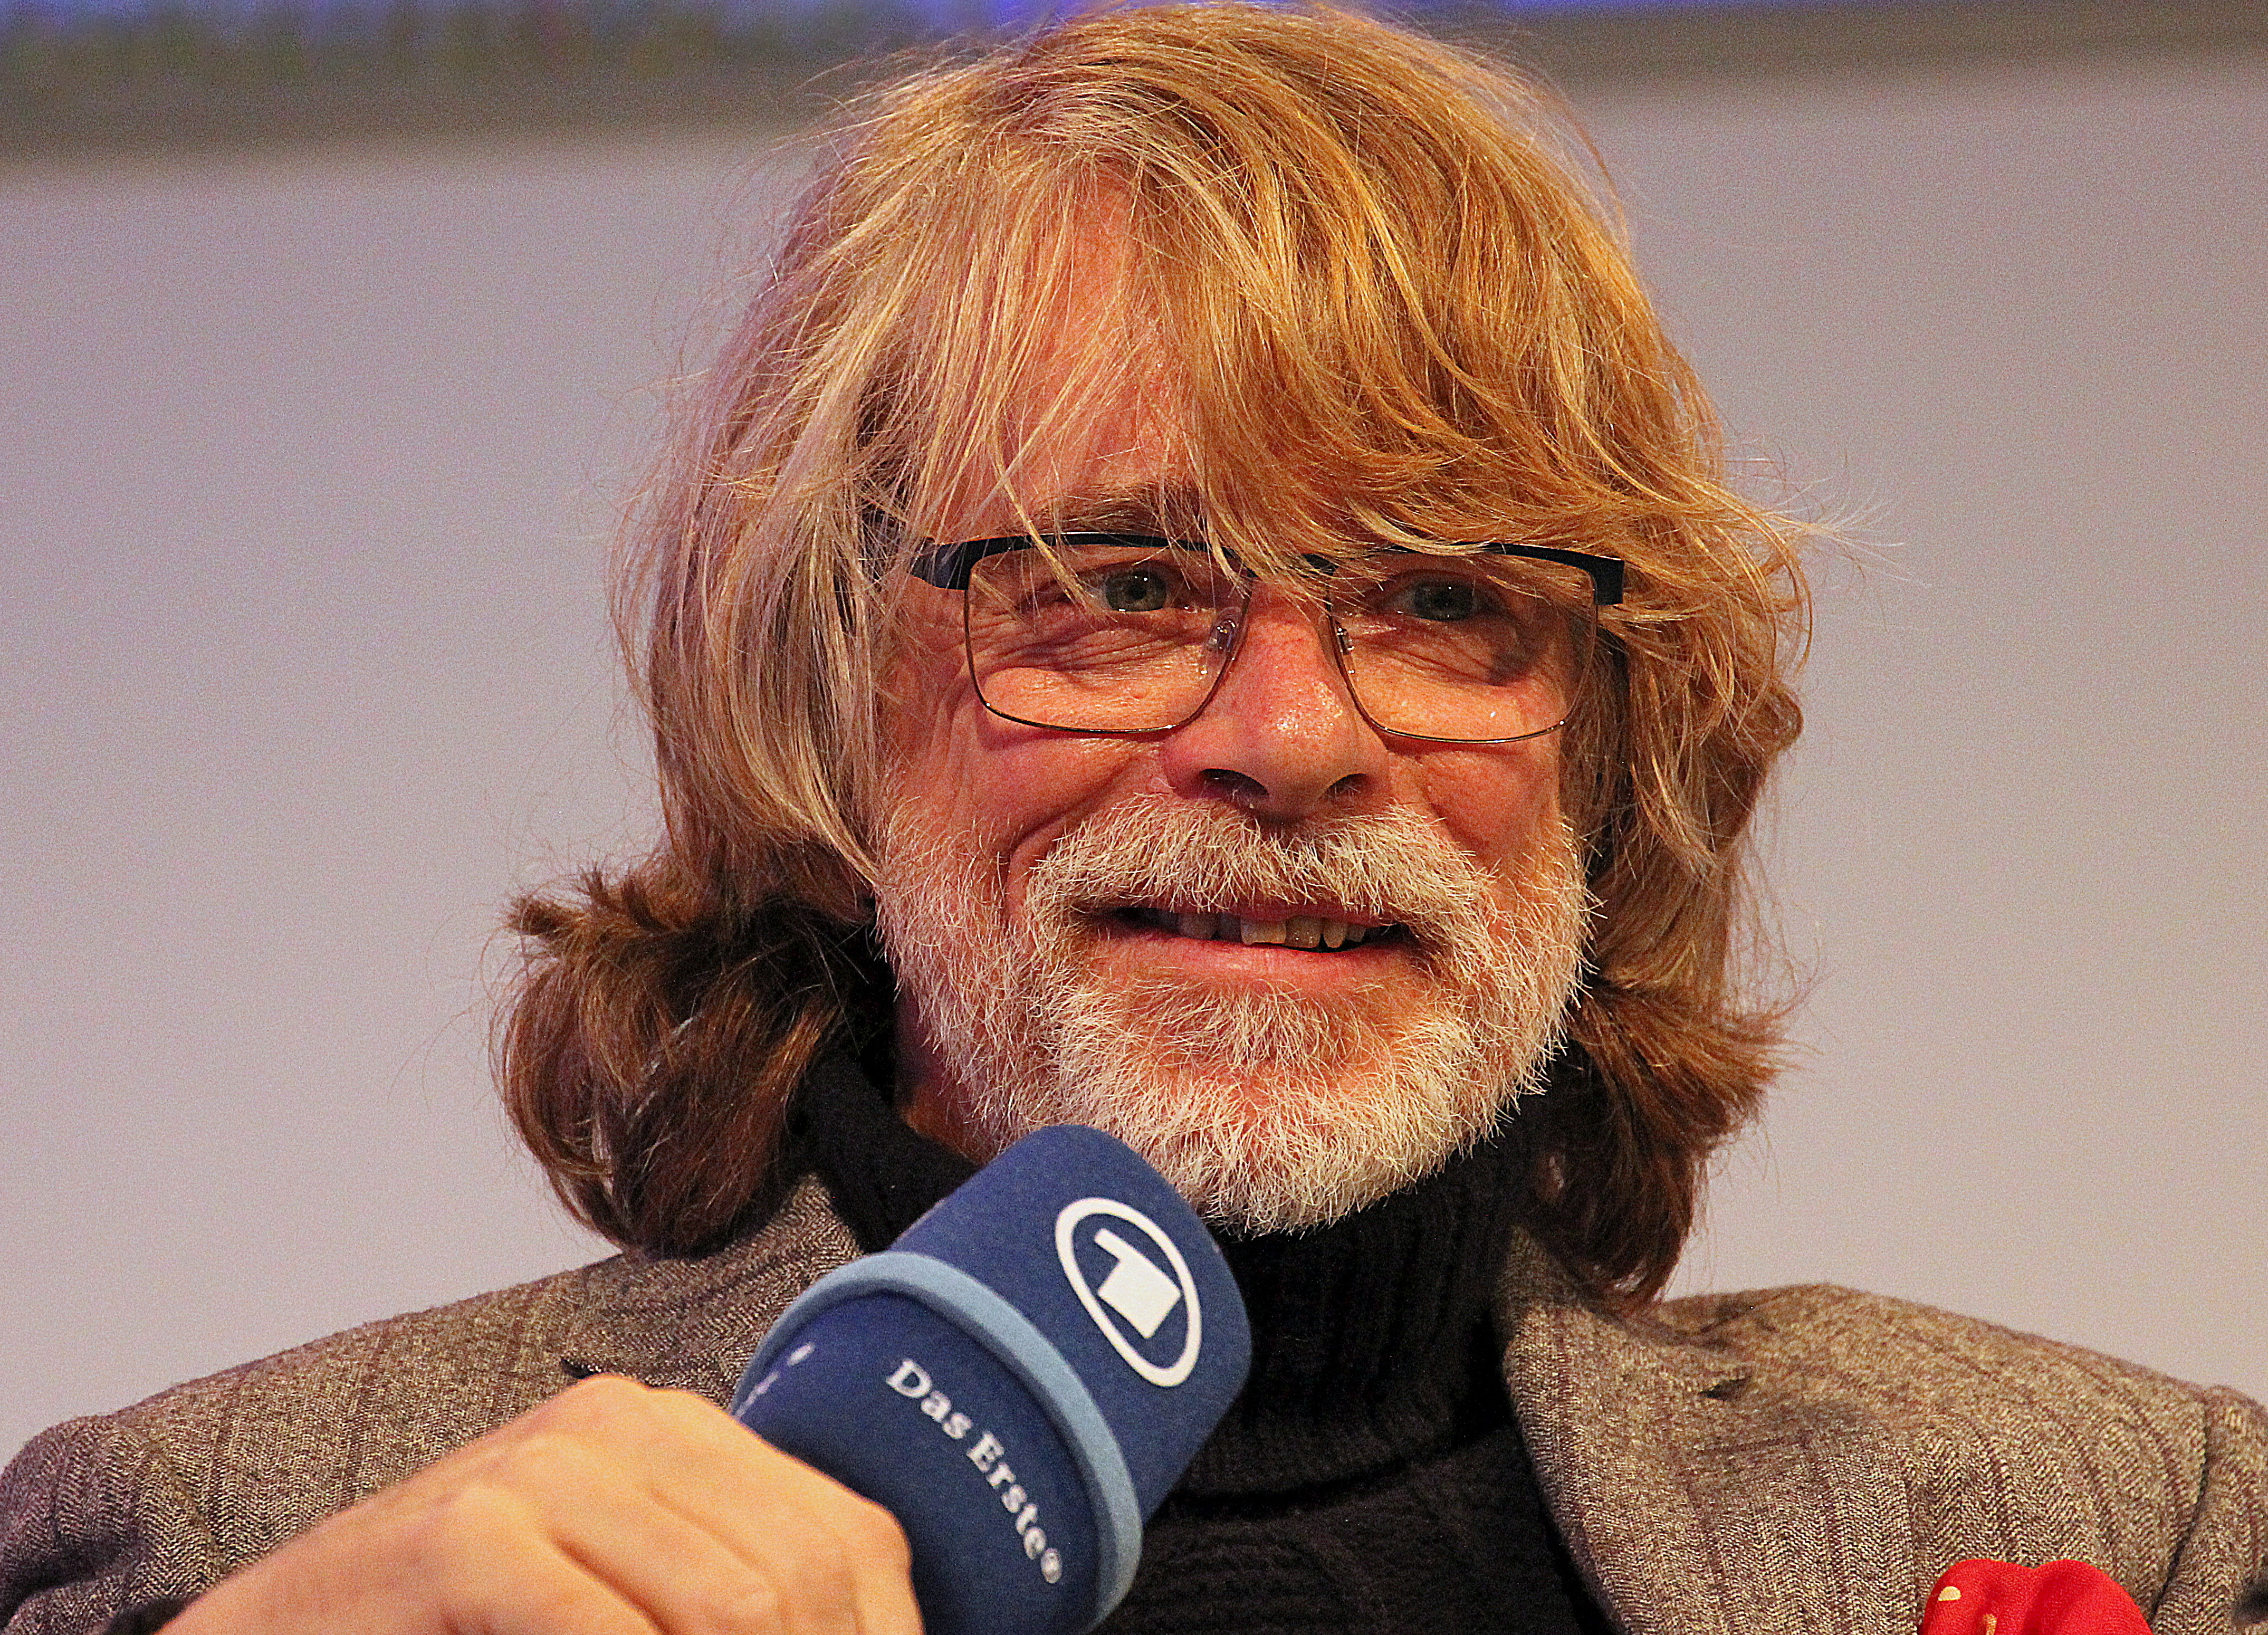 The 62-year old son of father (?) and mother(?) Helge Schneider in 2018 photo. Helge Schneider earned a  million dollar salary - leaving the net worth at 3 million in 2018